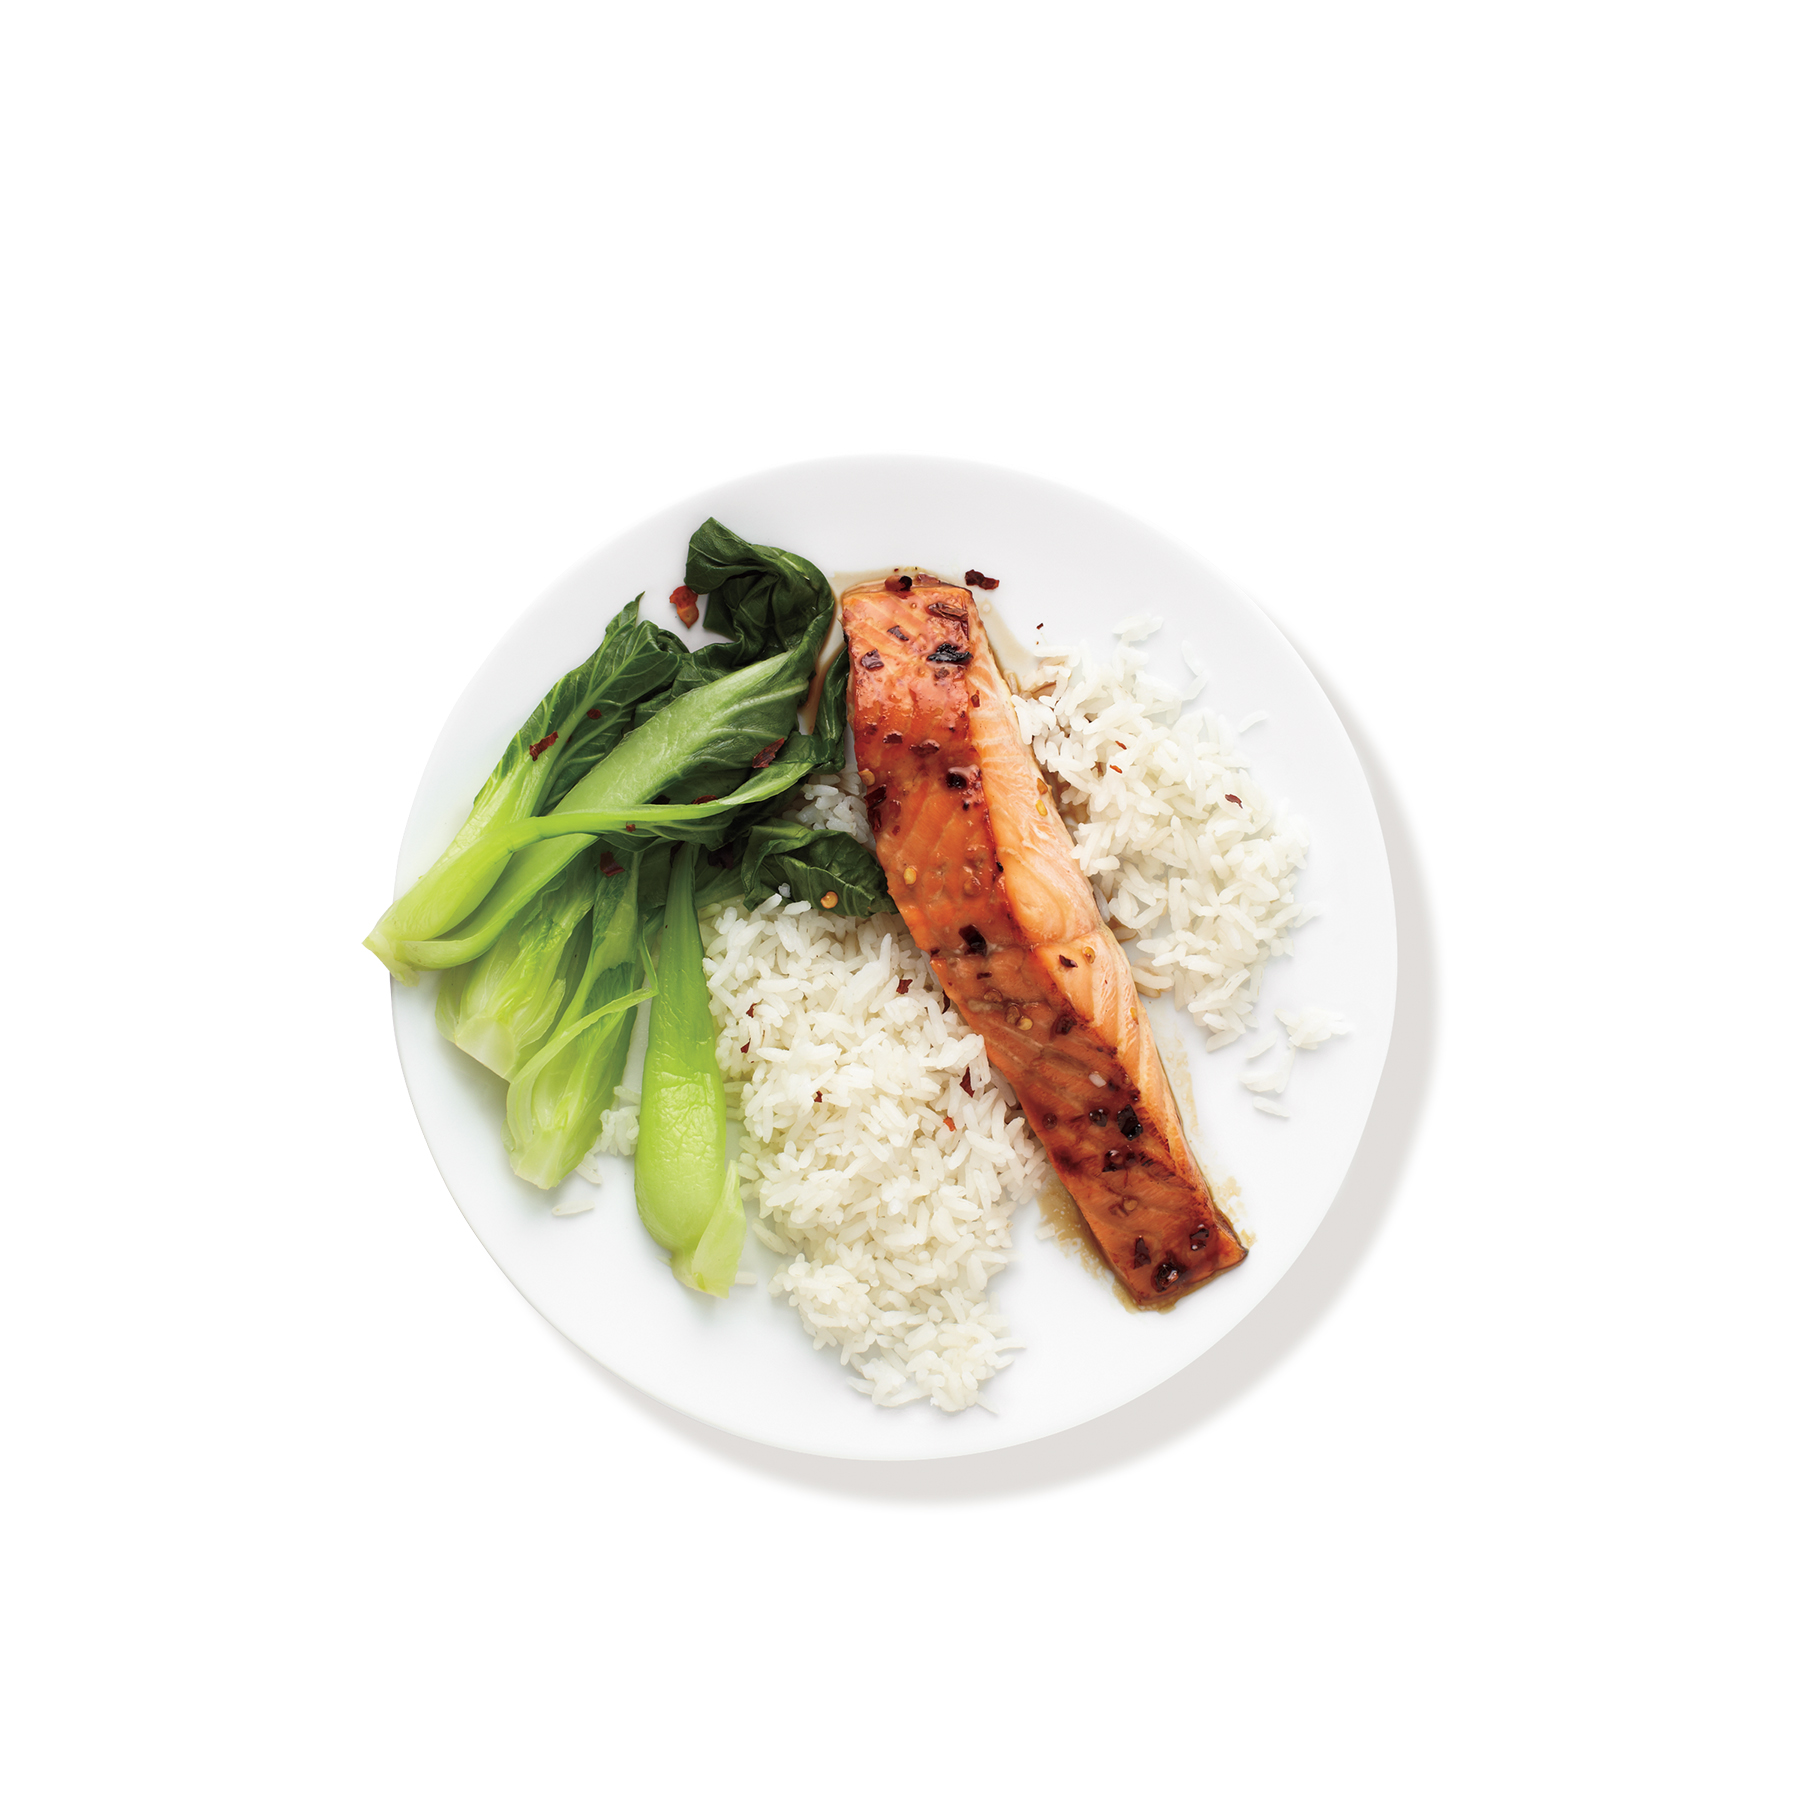 Dinner Ideas: Spicy Salmon With Bok Choy and Rice